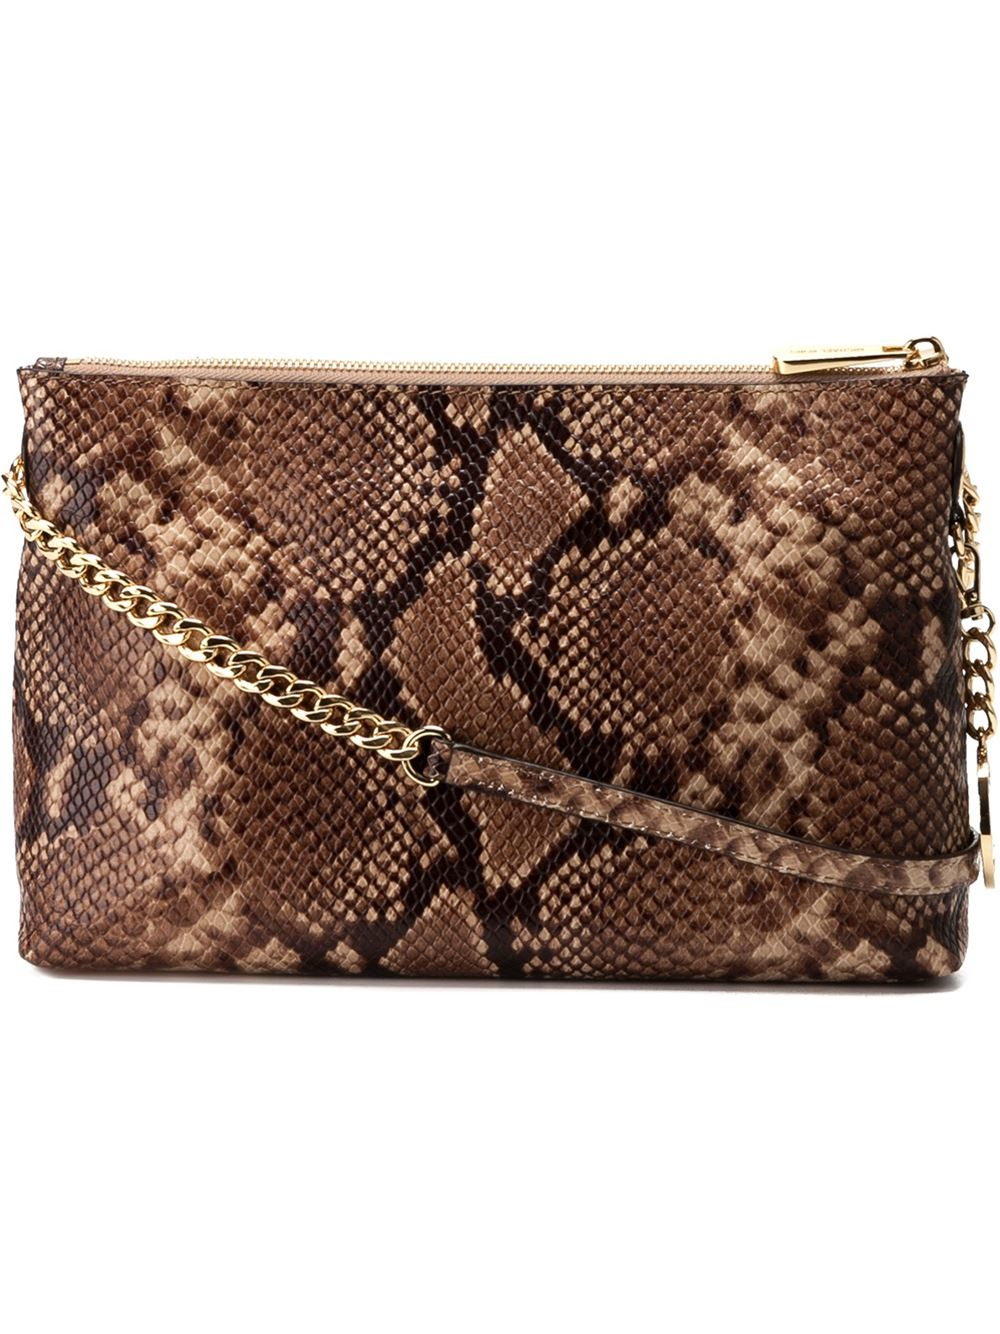 48995326c915 MICHAEL Michael Kors Snakeskin Effect Crossbody Bag in Brown - Lyst